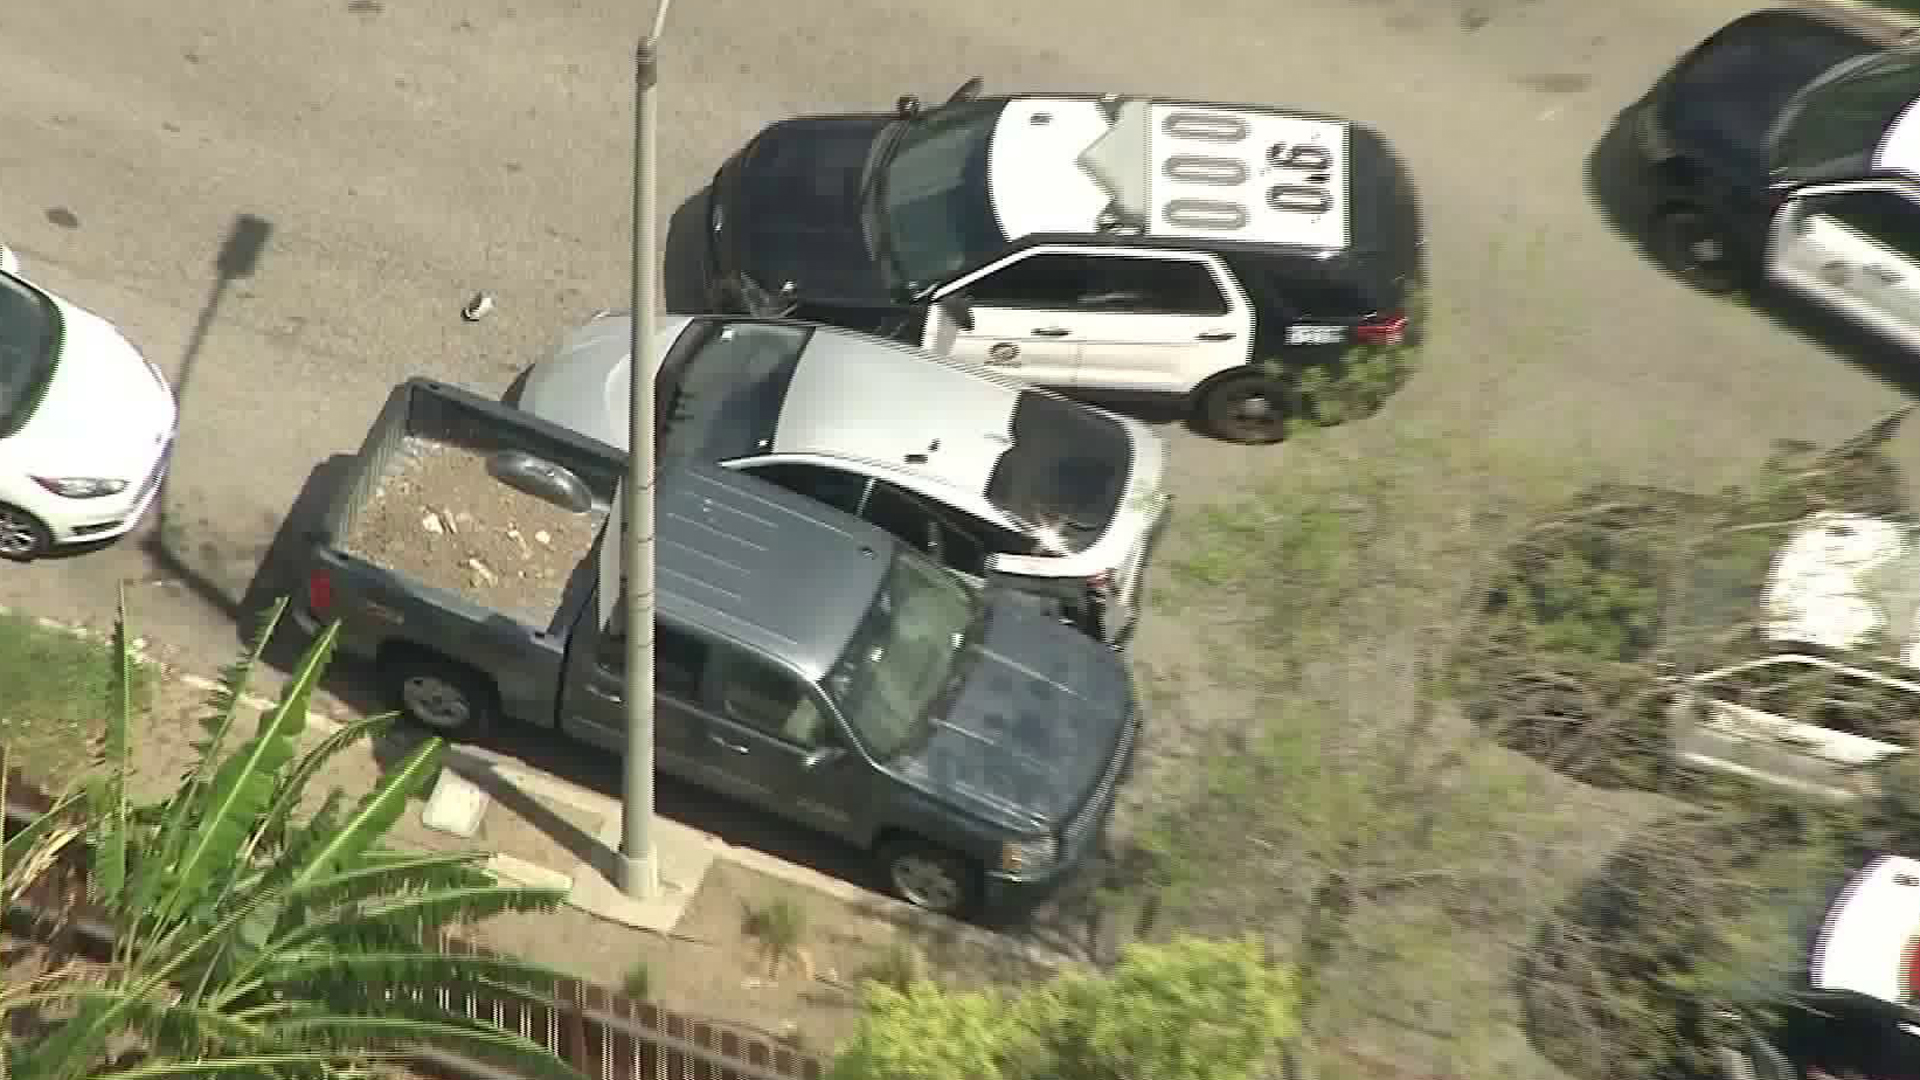 A Prius is seen wedged between an LAPD patrol vehicle and a parked truck in East Hollywood on April 4, 2019, bringing an end to a police chase. (Credit: KTLA)